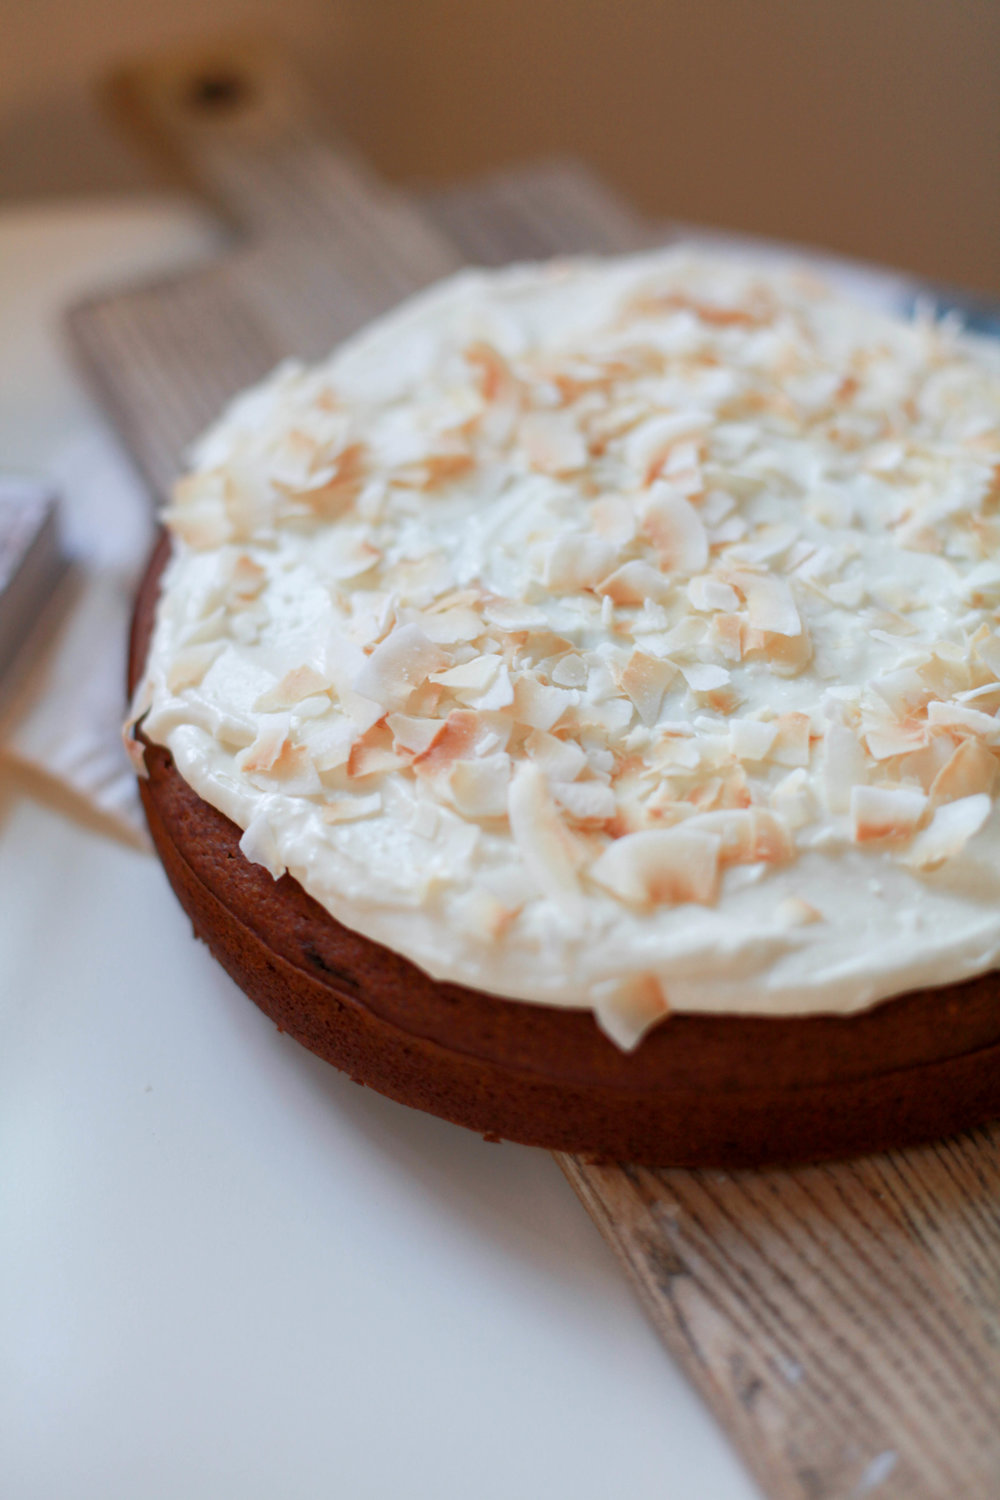 Applesauce Cake with Honey Cream Cheese Frosting - Makes one round cakeFrom Julia Turshen's Now and Again